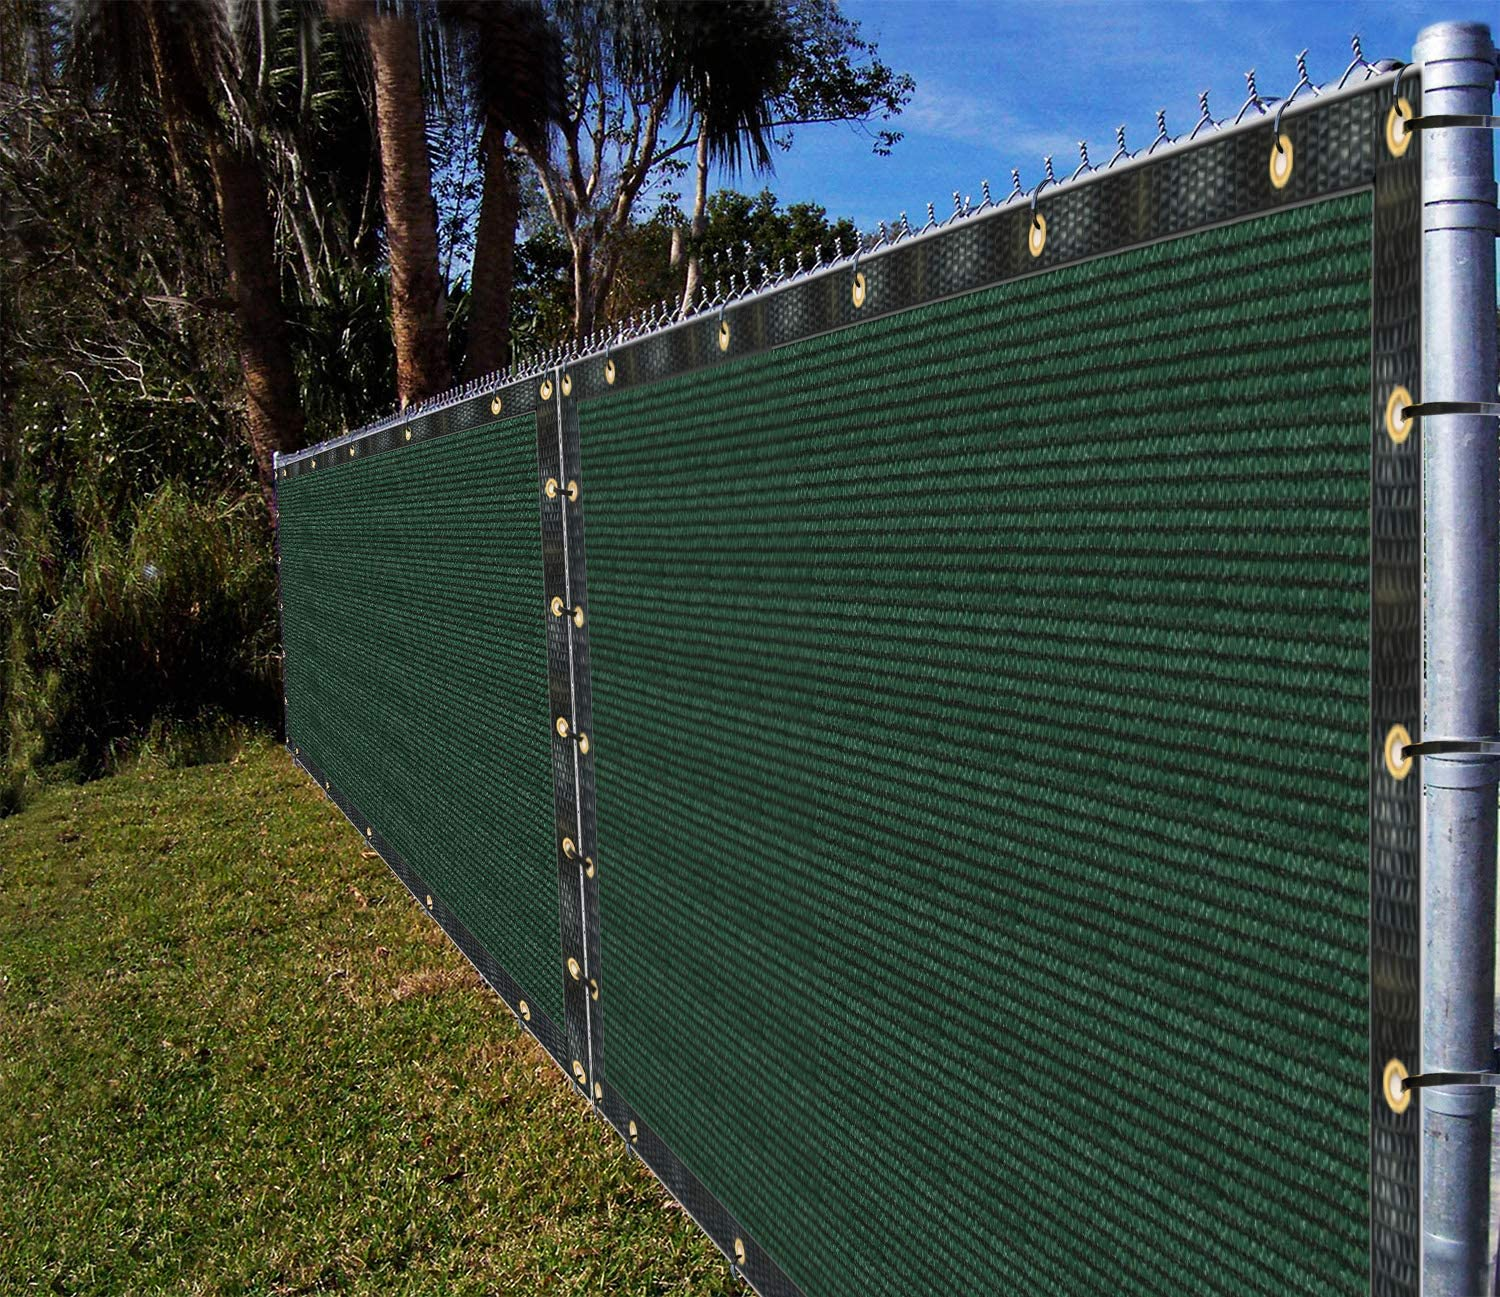 Ifenceview 4'x5' to 4'x50' Green Shade Cloth Fabric Fence Privacy Screen Panels Mesh Net for Construction Site Yard Driveway Garden Pergola Gazebos Railing Canopy Awning 180 GSM UV Protection (4'x6')